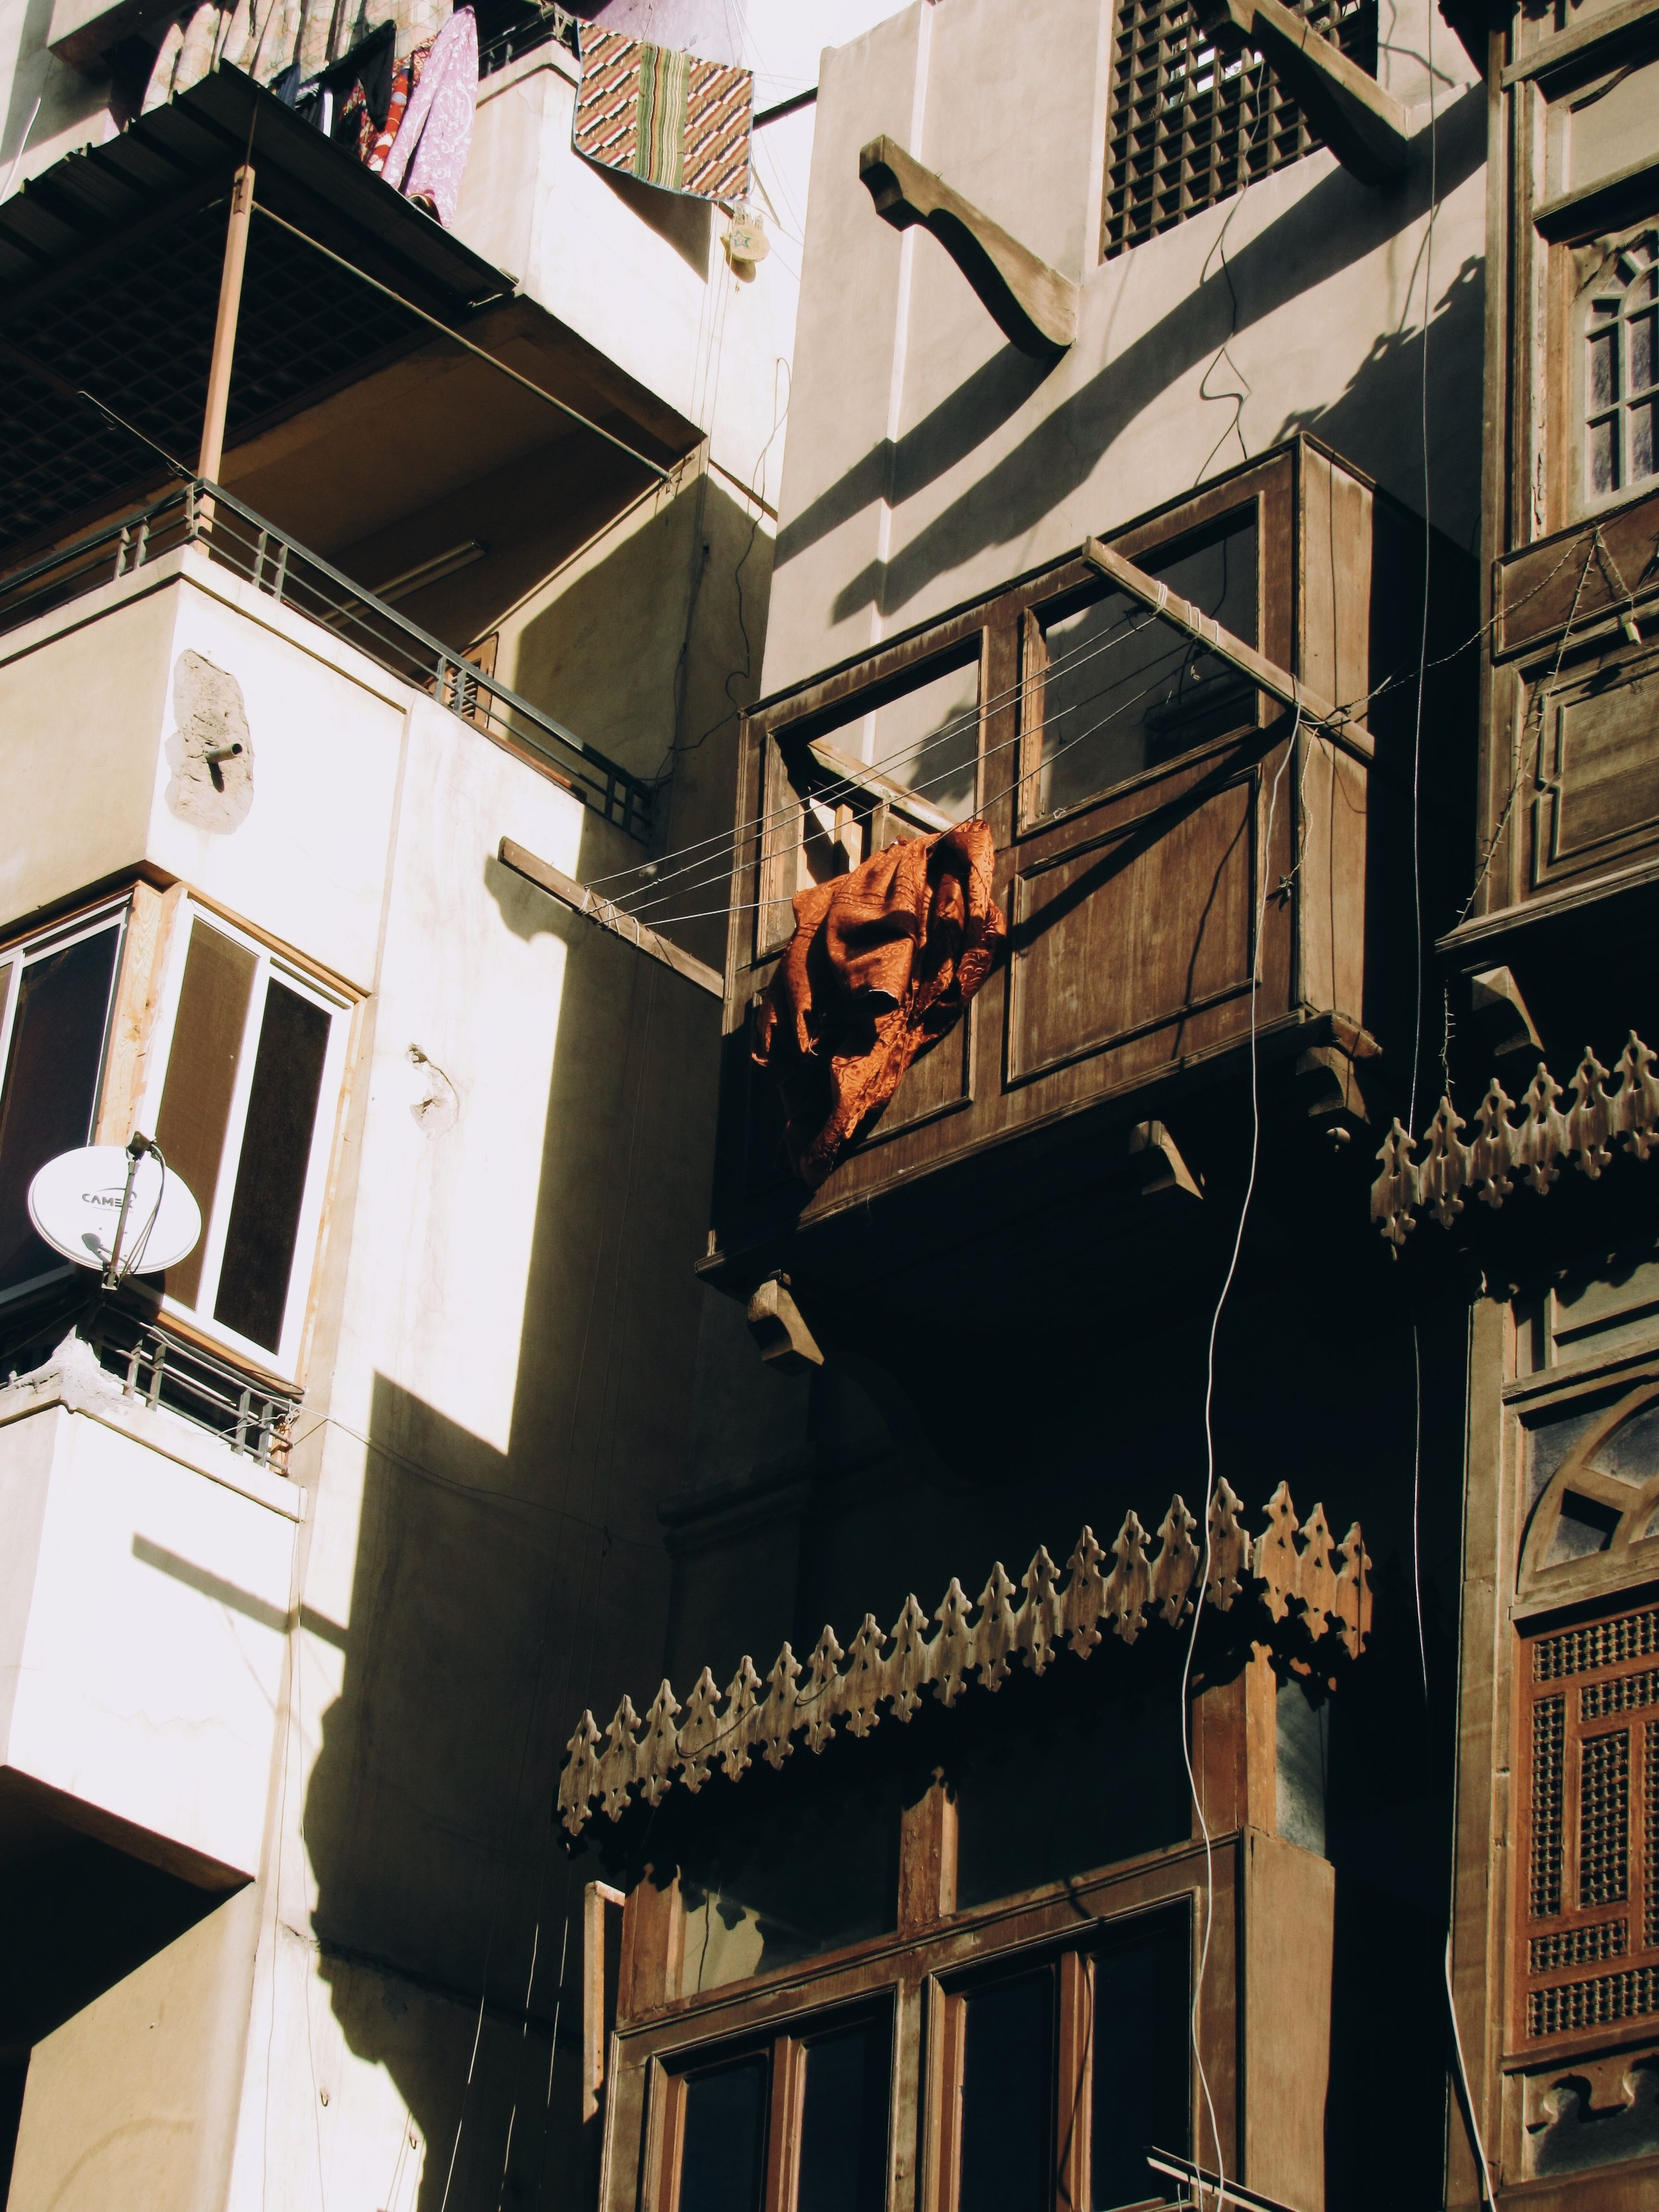 Cairo Commune |  December 18, 2018 Cairo, Egypt | A burning orange cloth or garment hanging on a string-line by a window, one of many among dwellings beside Khan al-Khalili in Downtown Cairo.